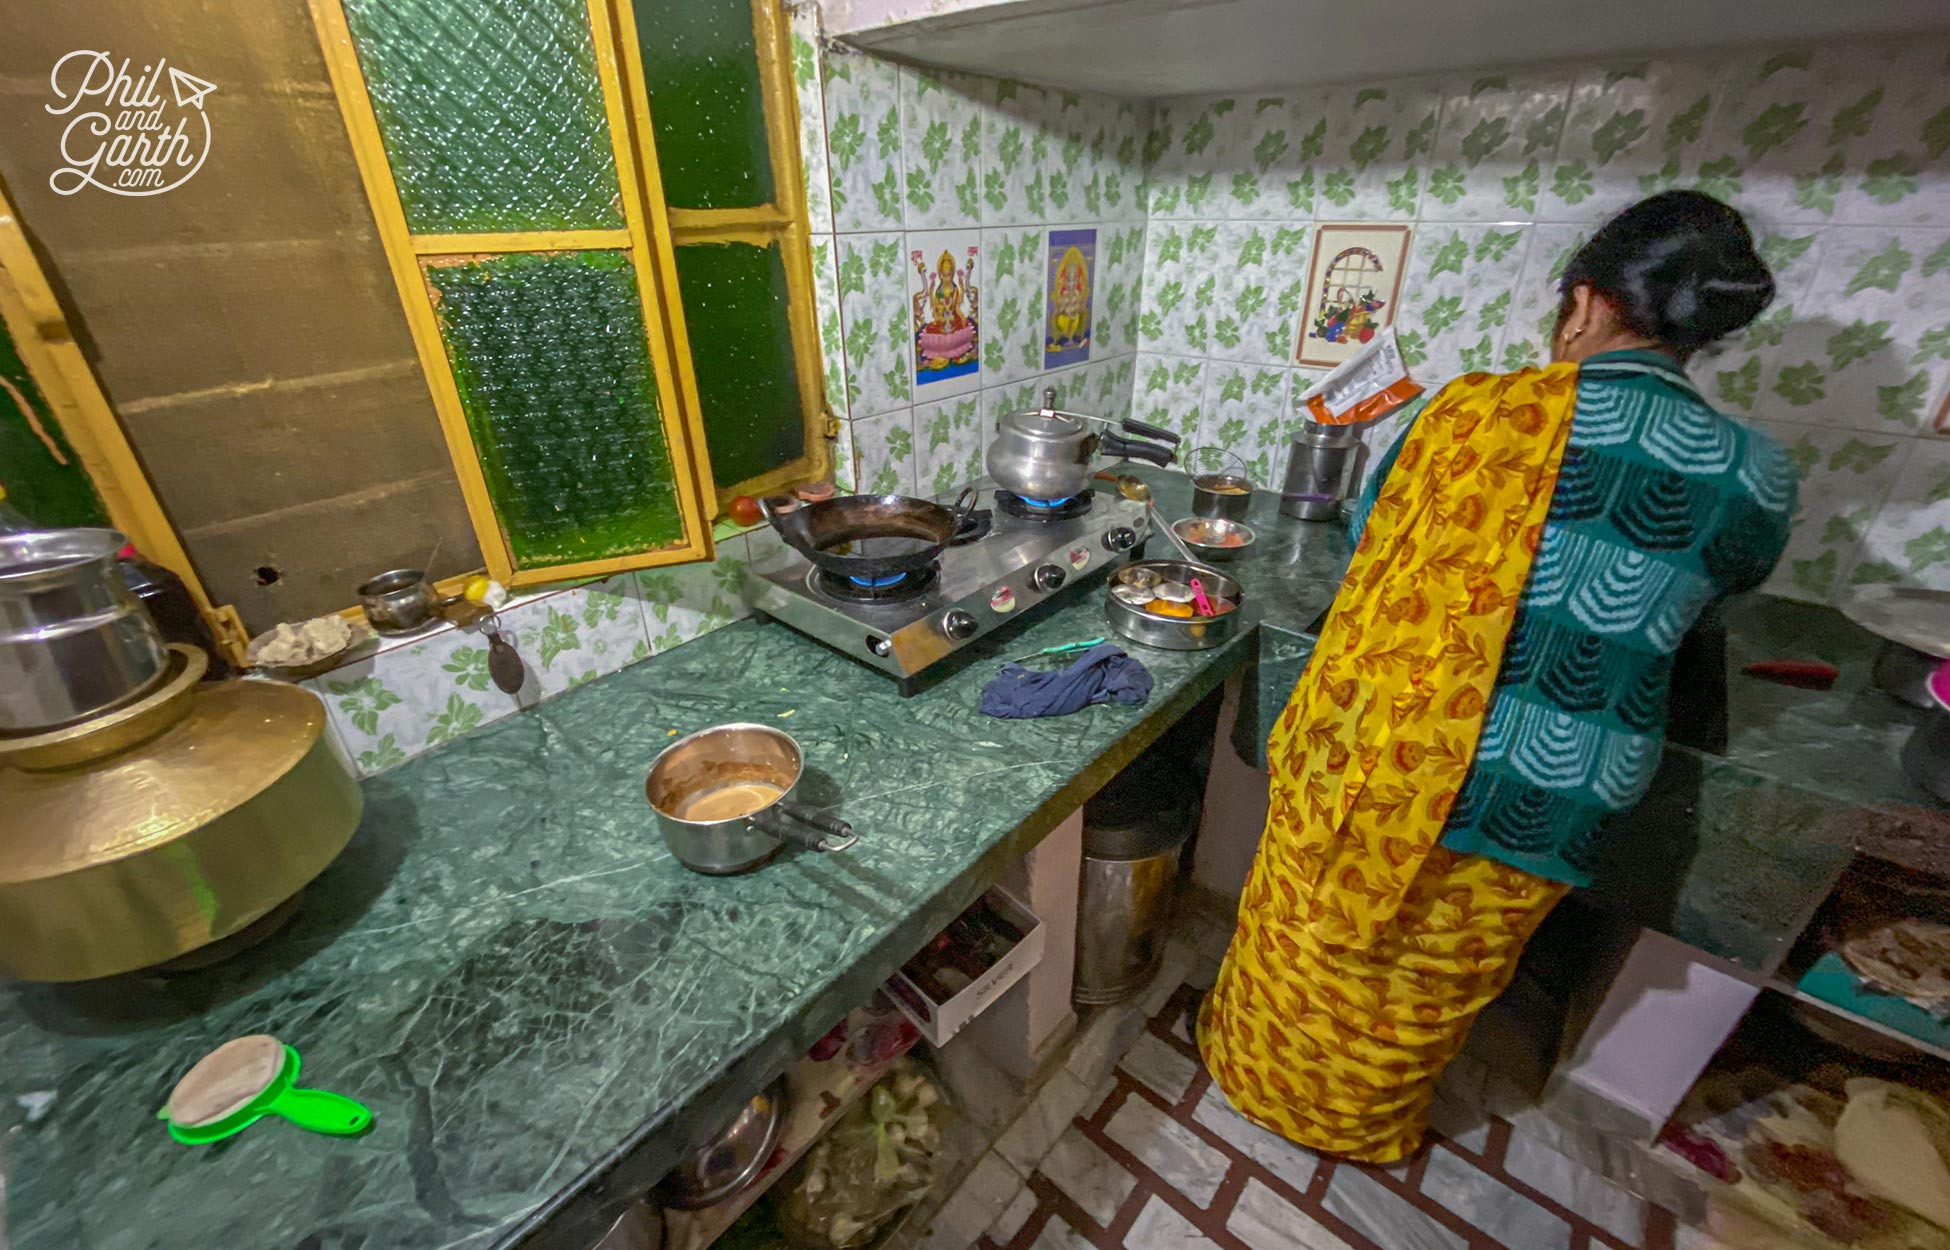 The kitchen of the family who cooked their homemade thali for our small group